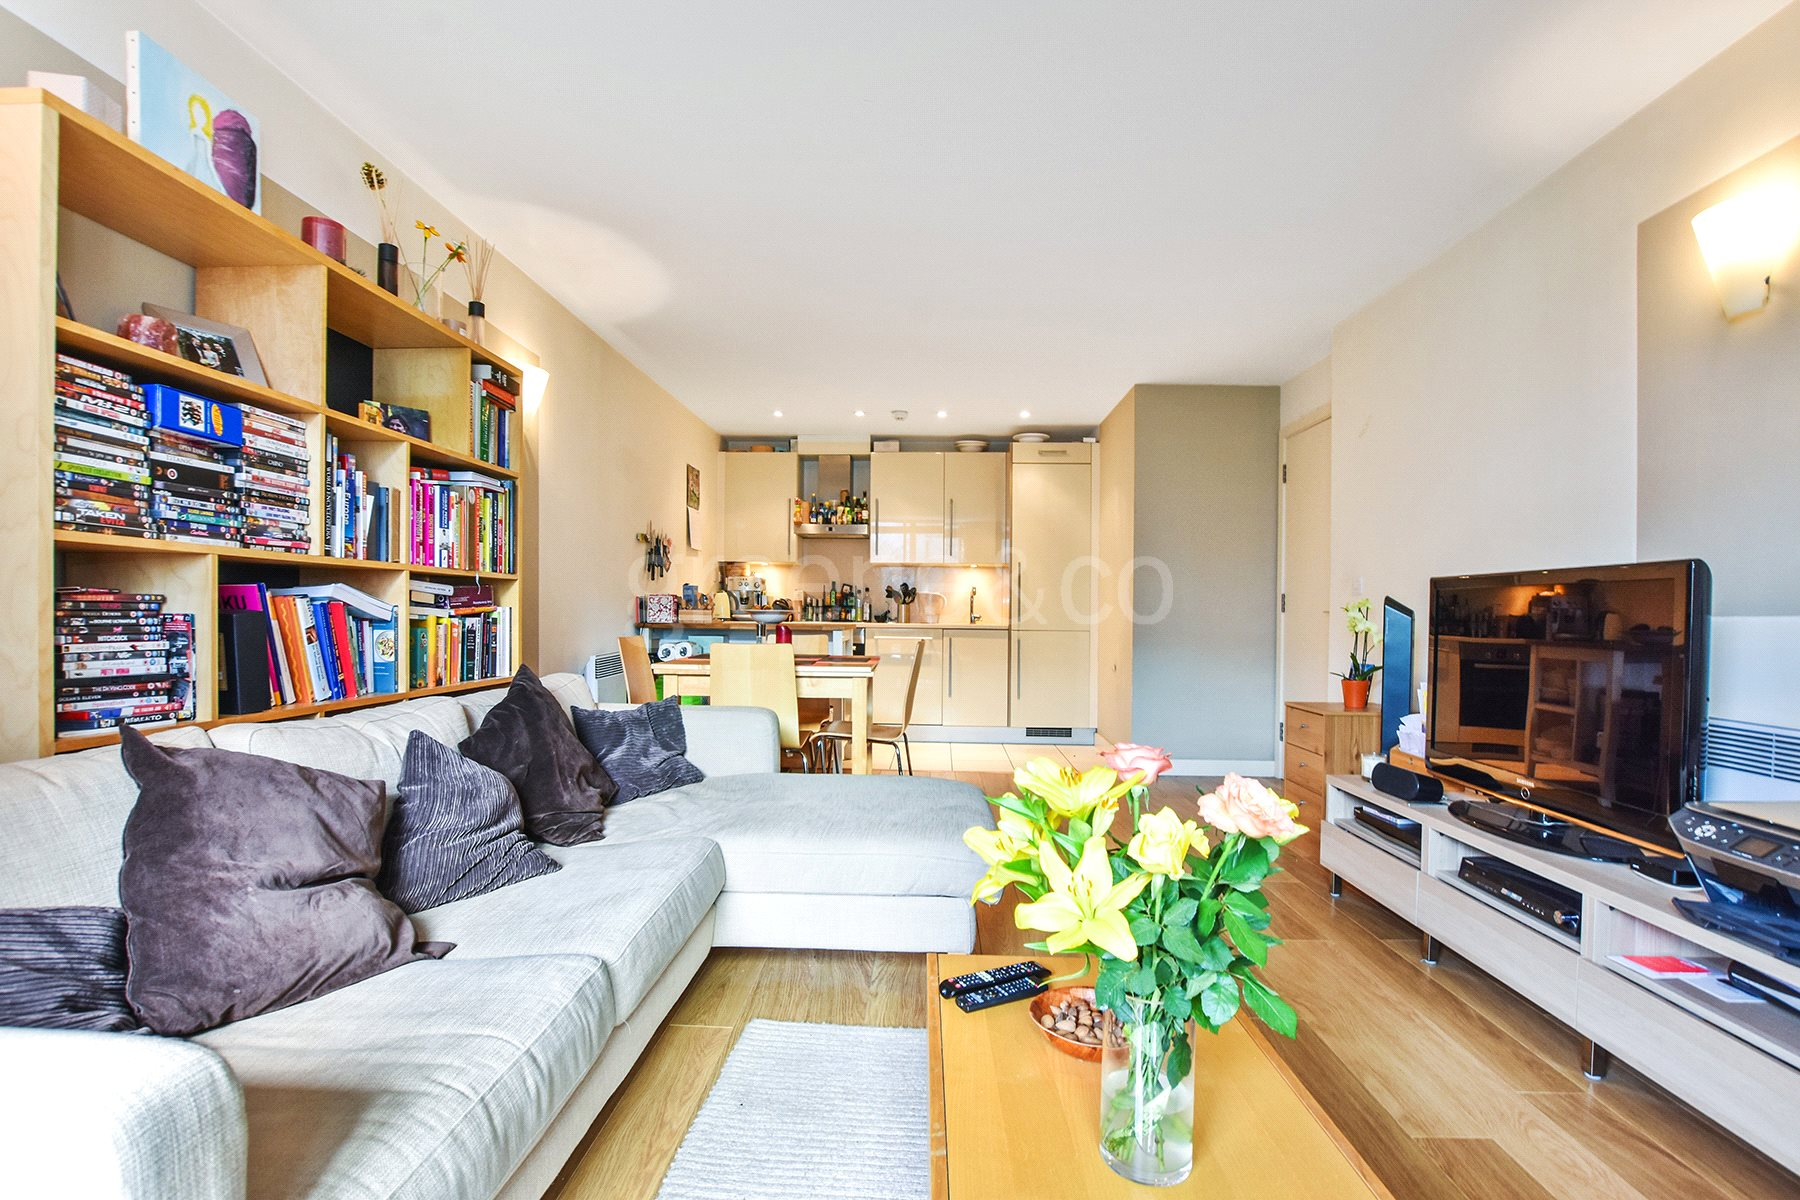 1 Bedroom Flat for sale in Emerson Apartments, New River Village, Crouch End, London, N8